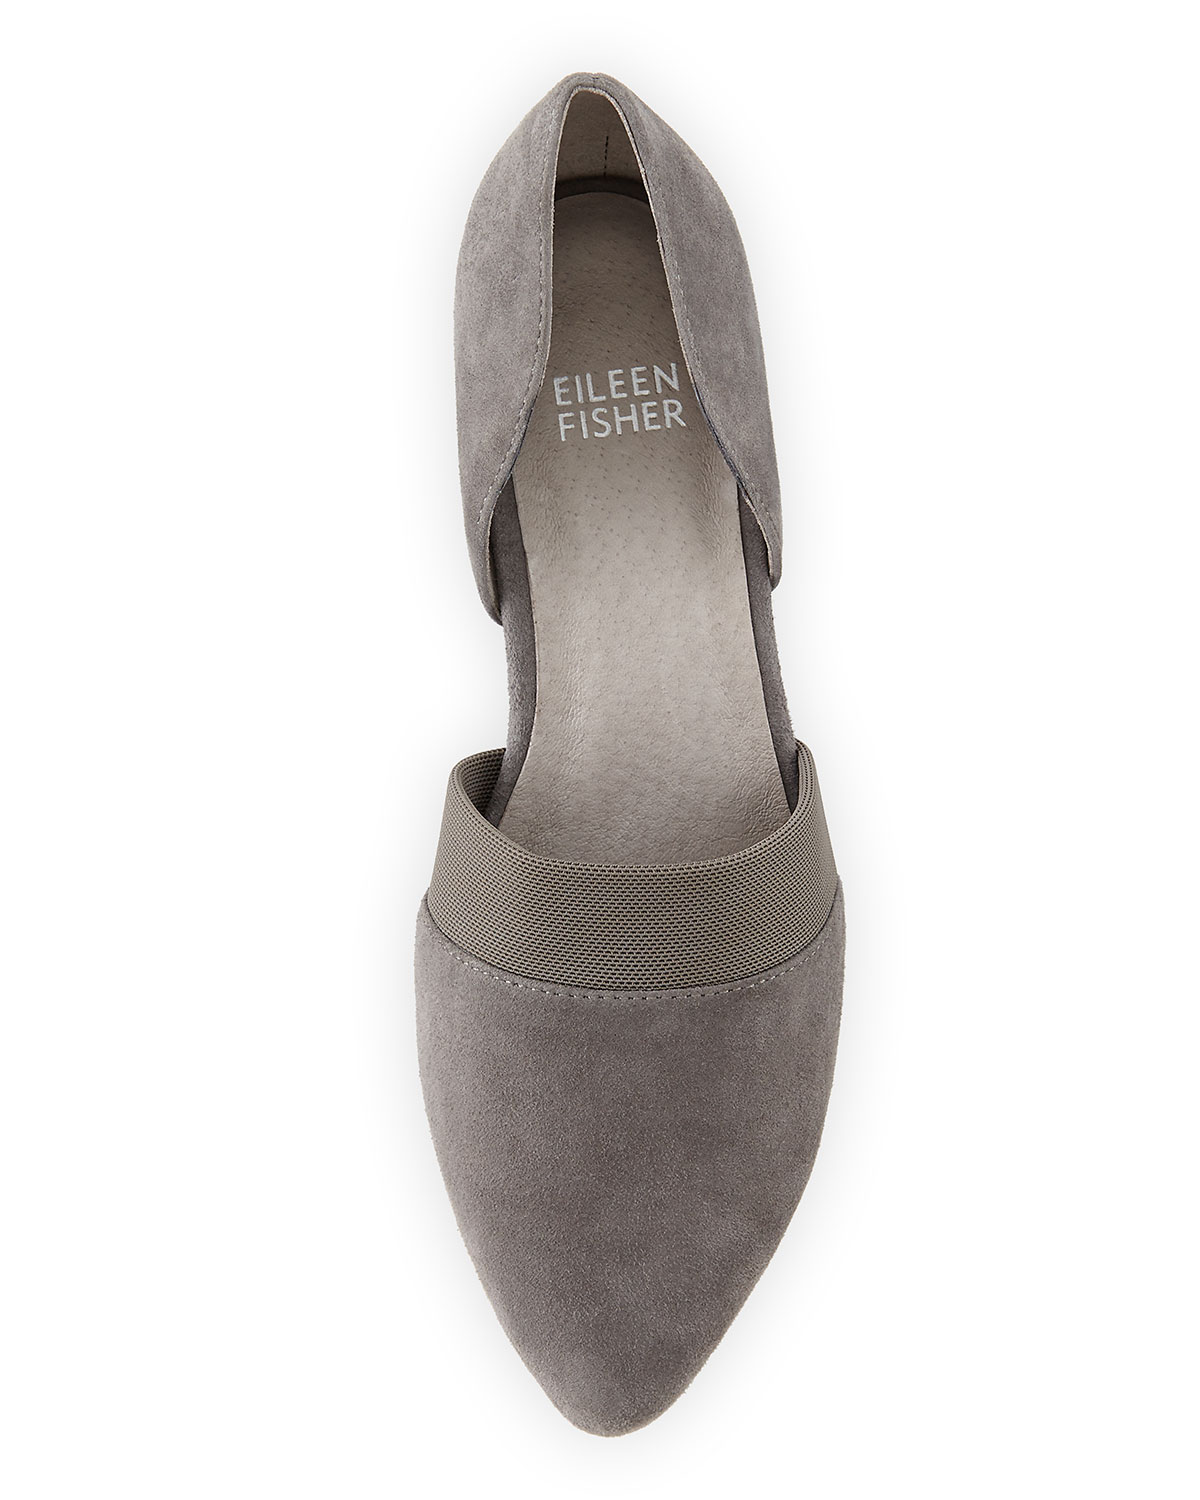 Eileen Fisher Hilly Demi-Wedge Suede